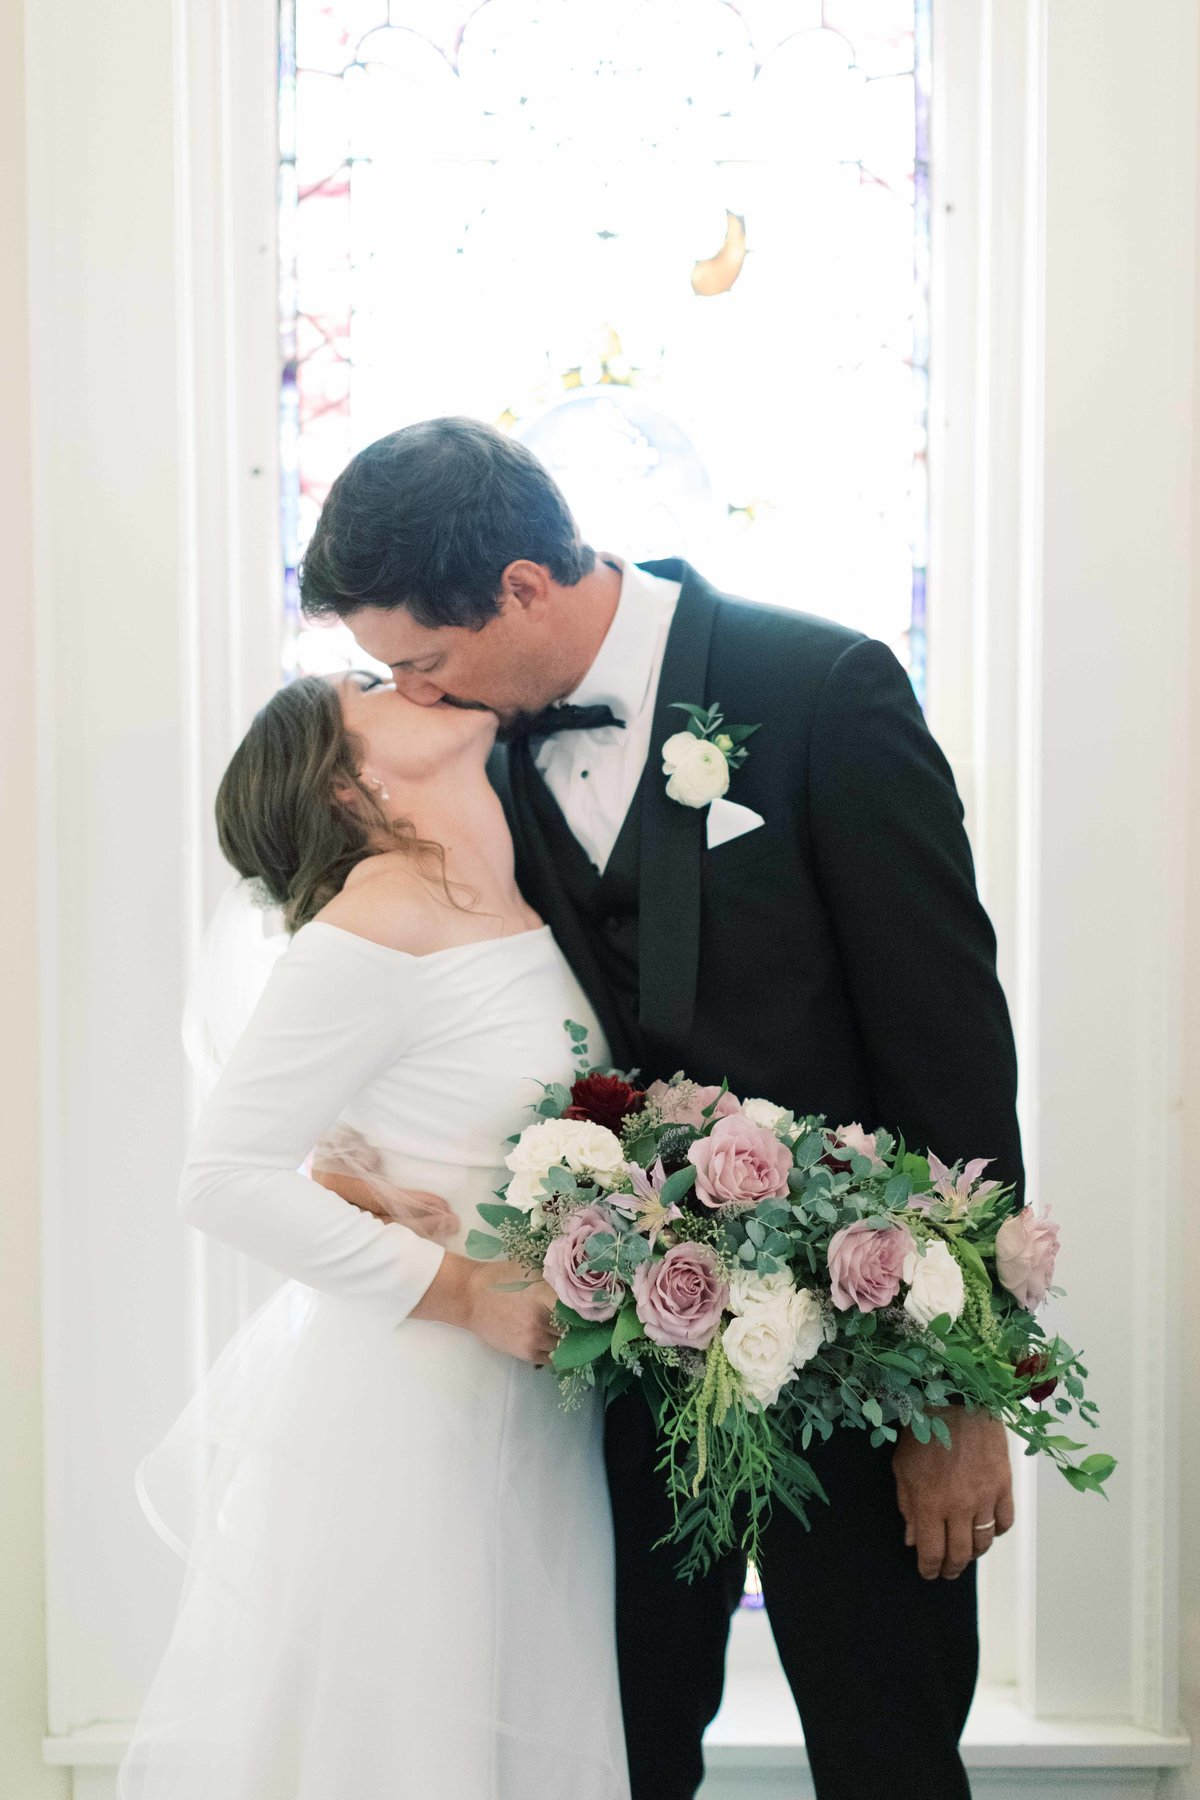 Angel_owens_photography_wedding_oliviarobert142